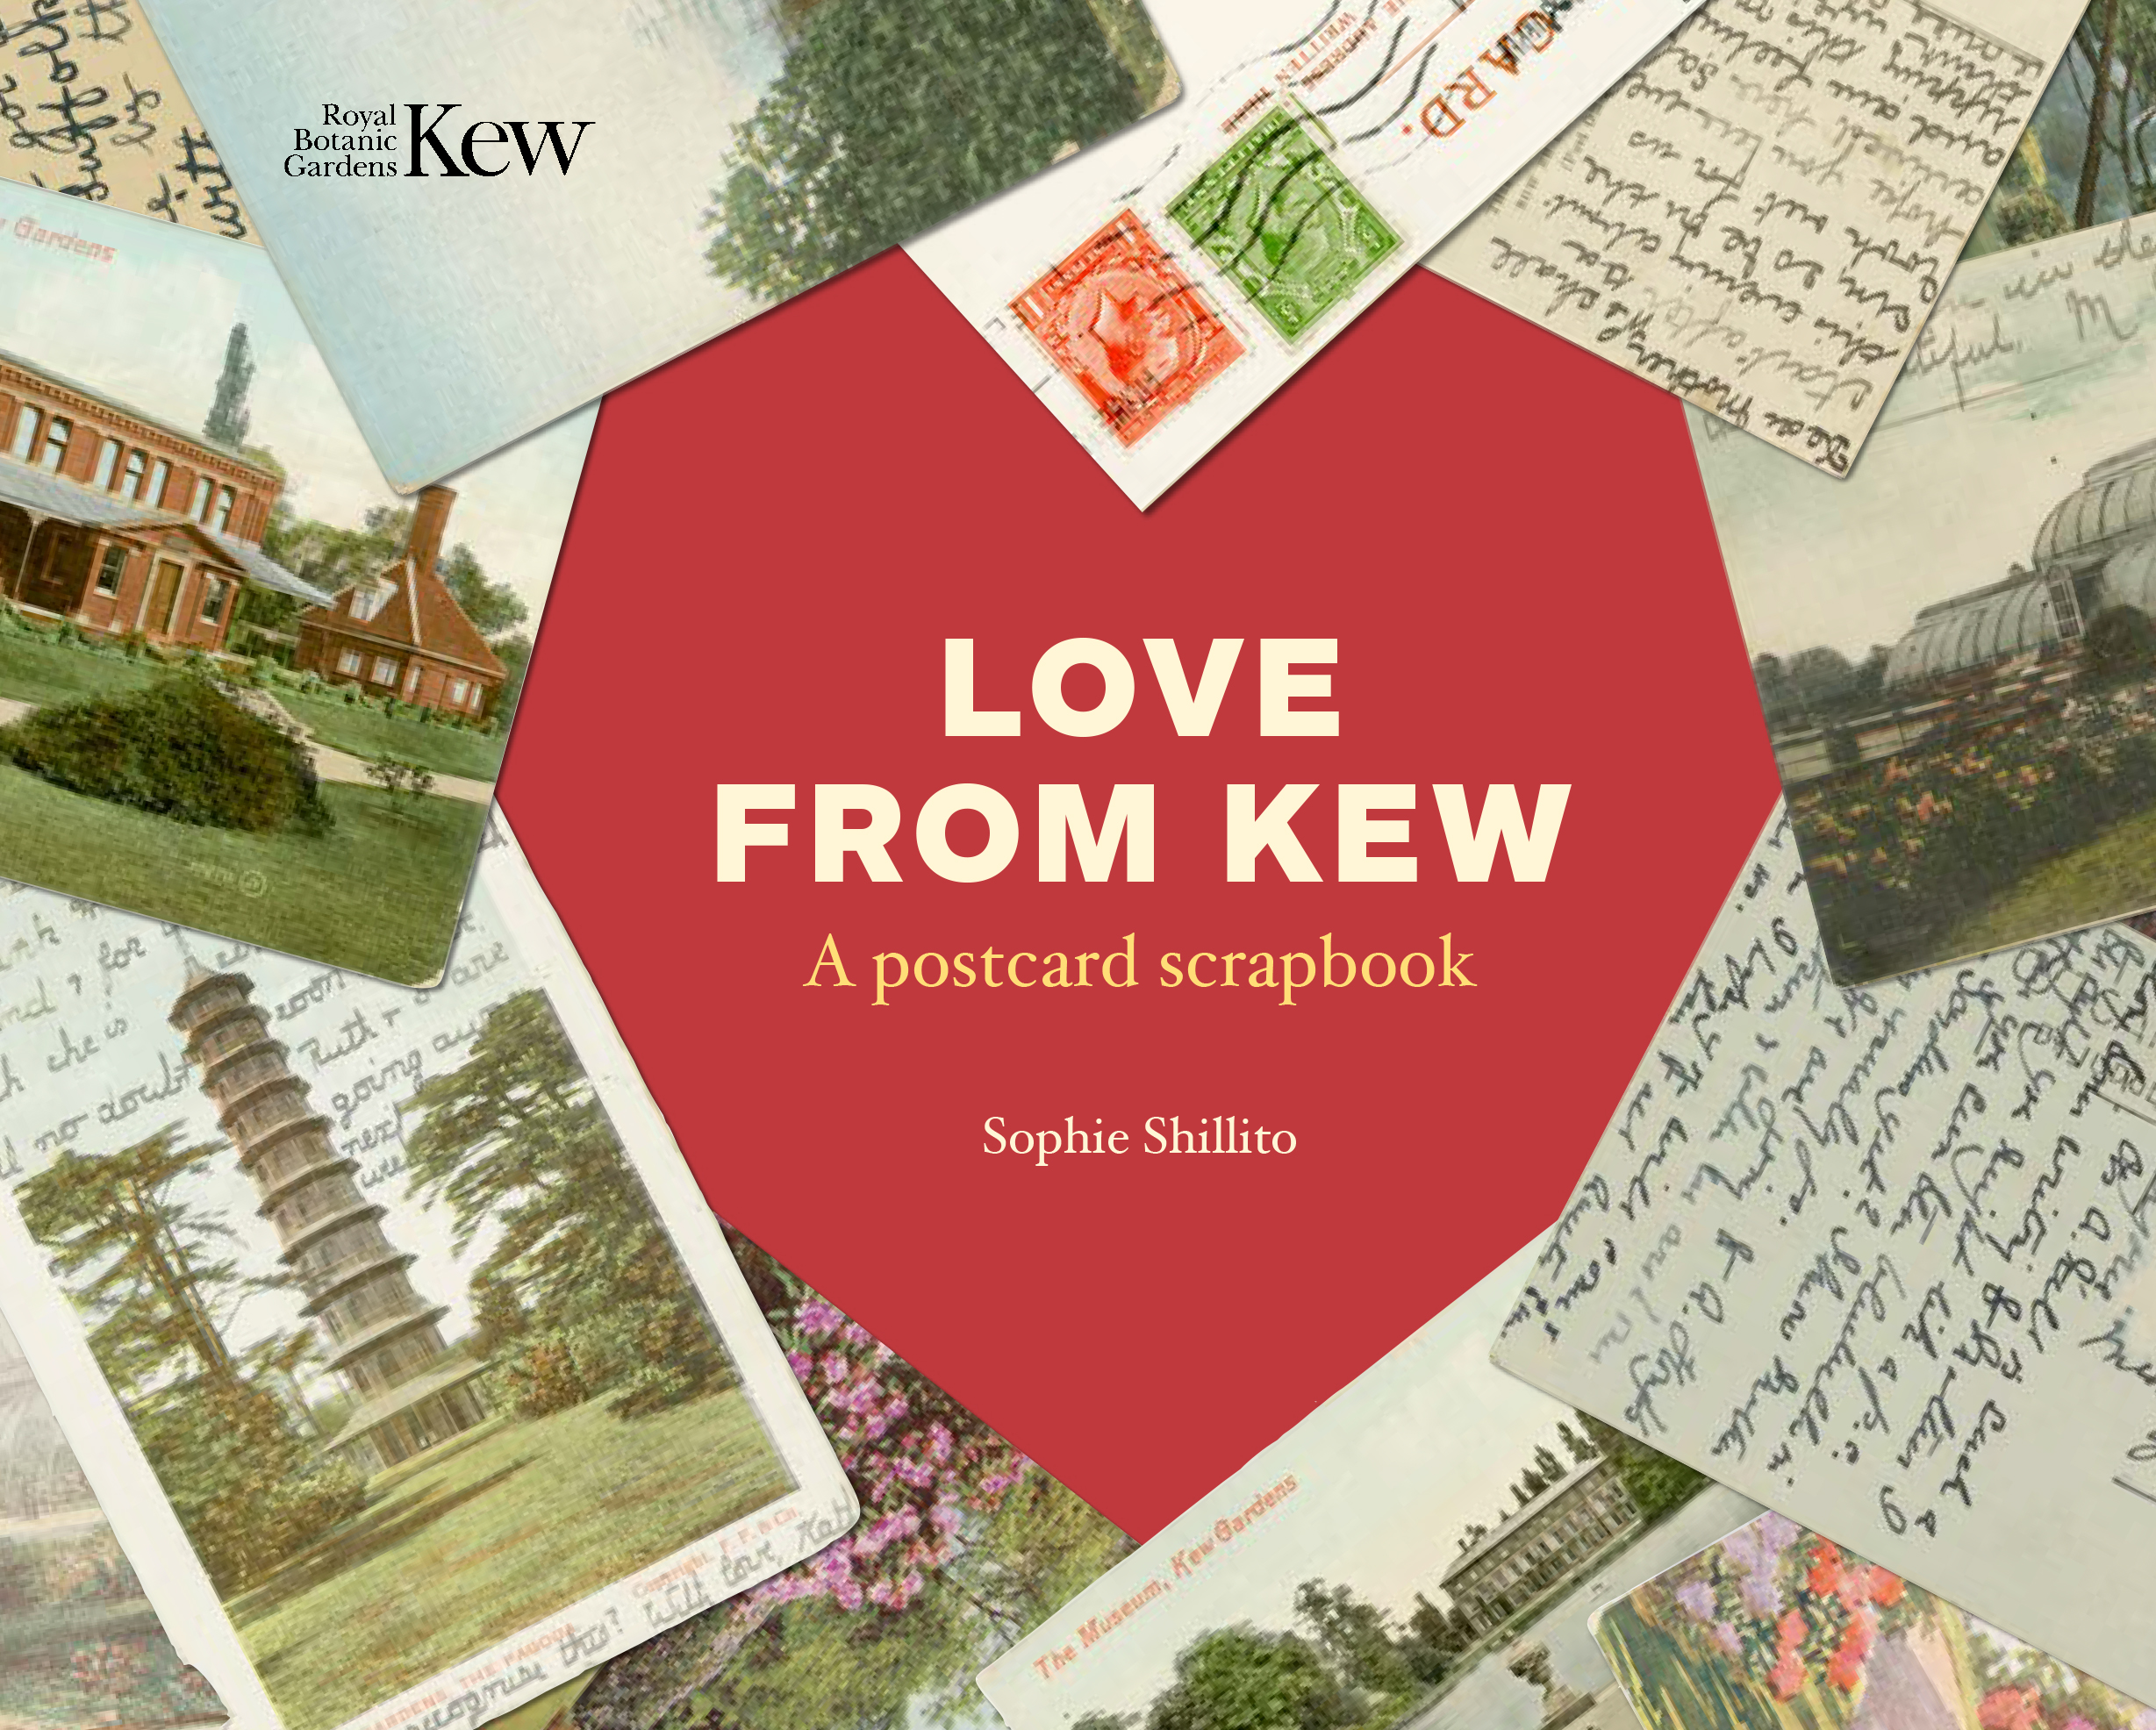 Cover art of Love from Kew